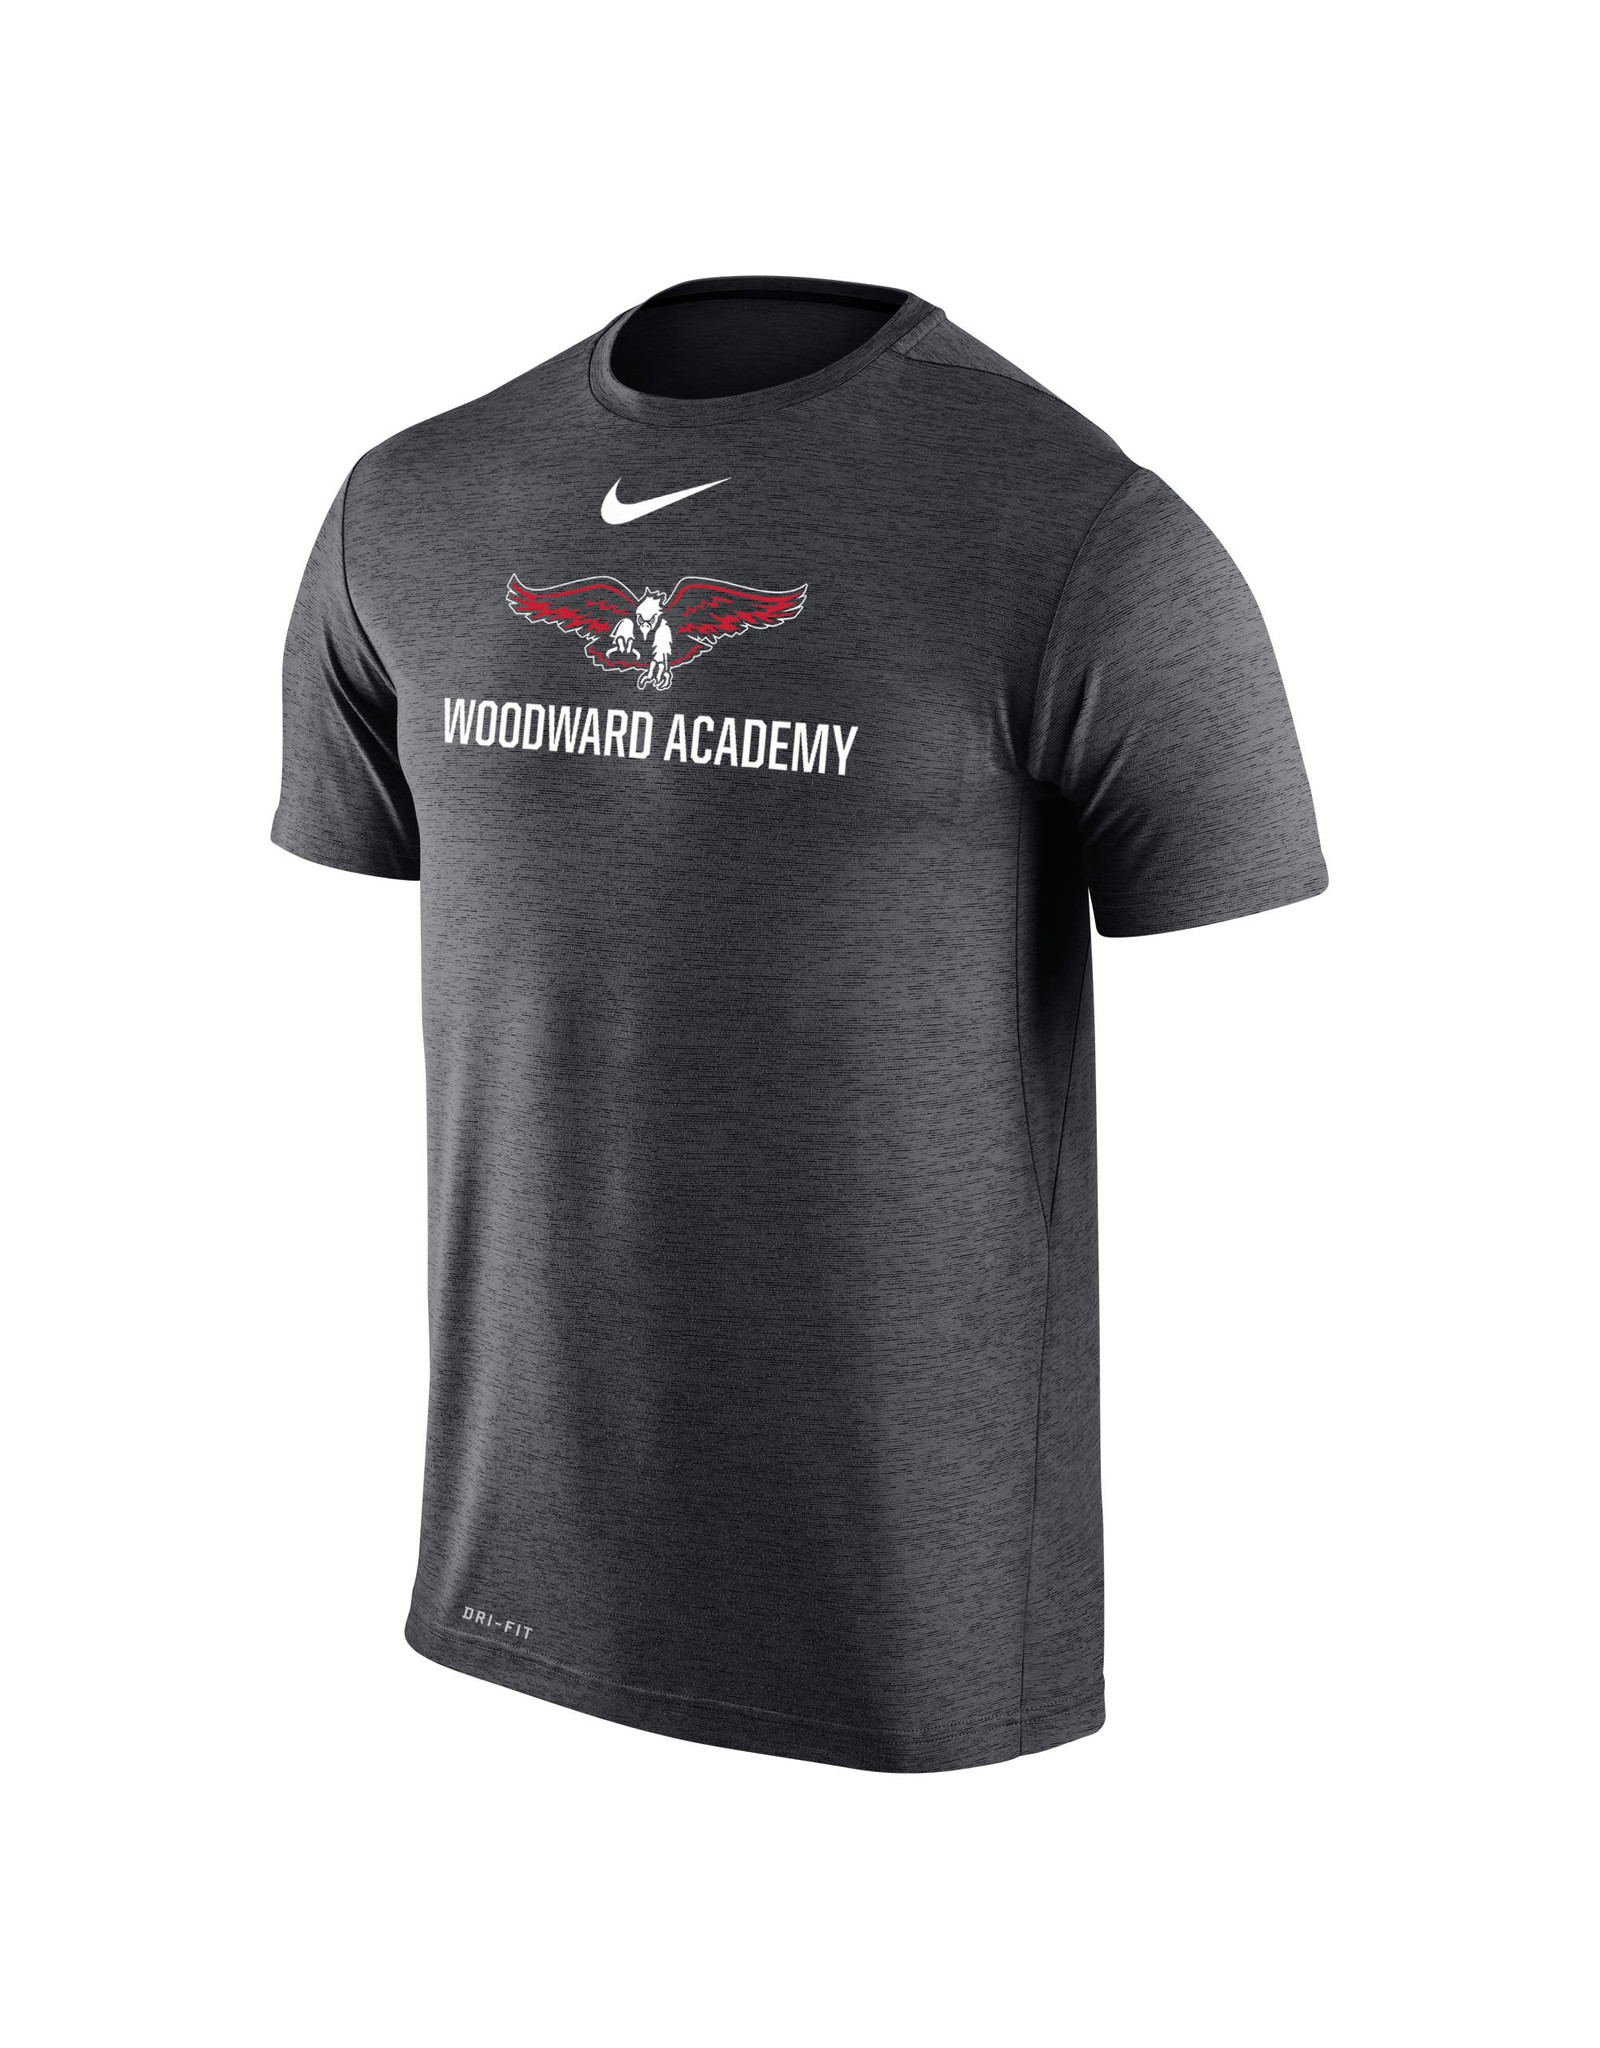 NIKE Coaches Dri-Fit T Shirt in Anthracite